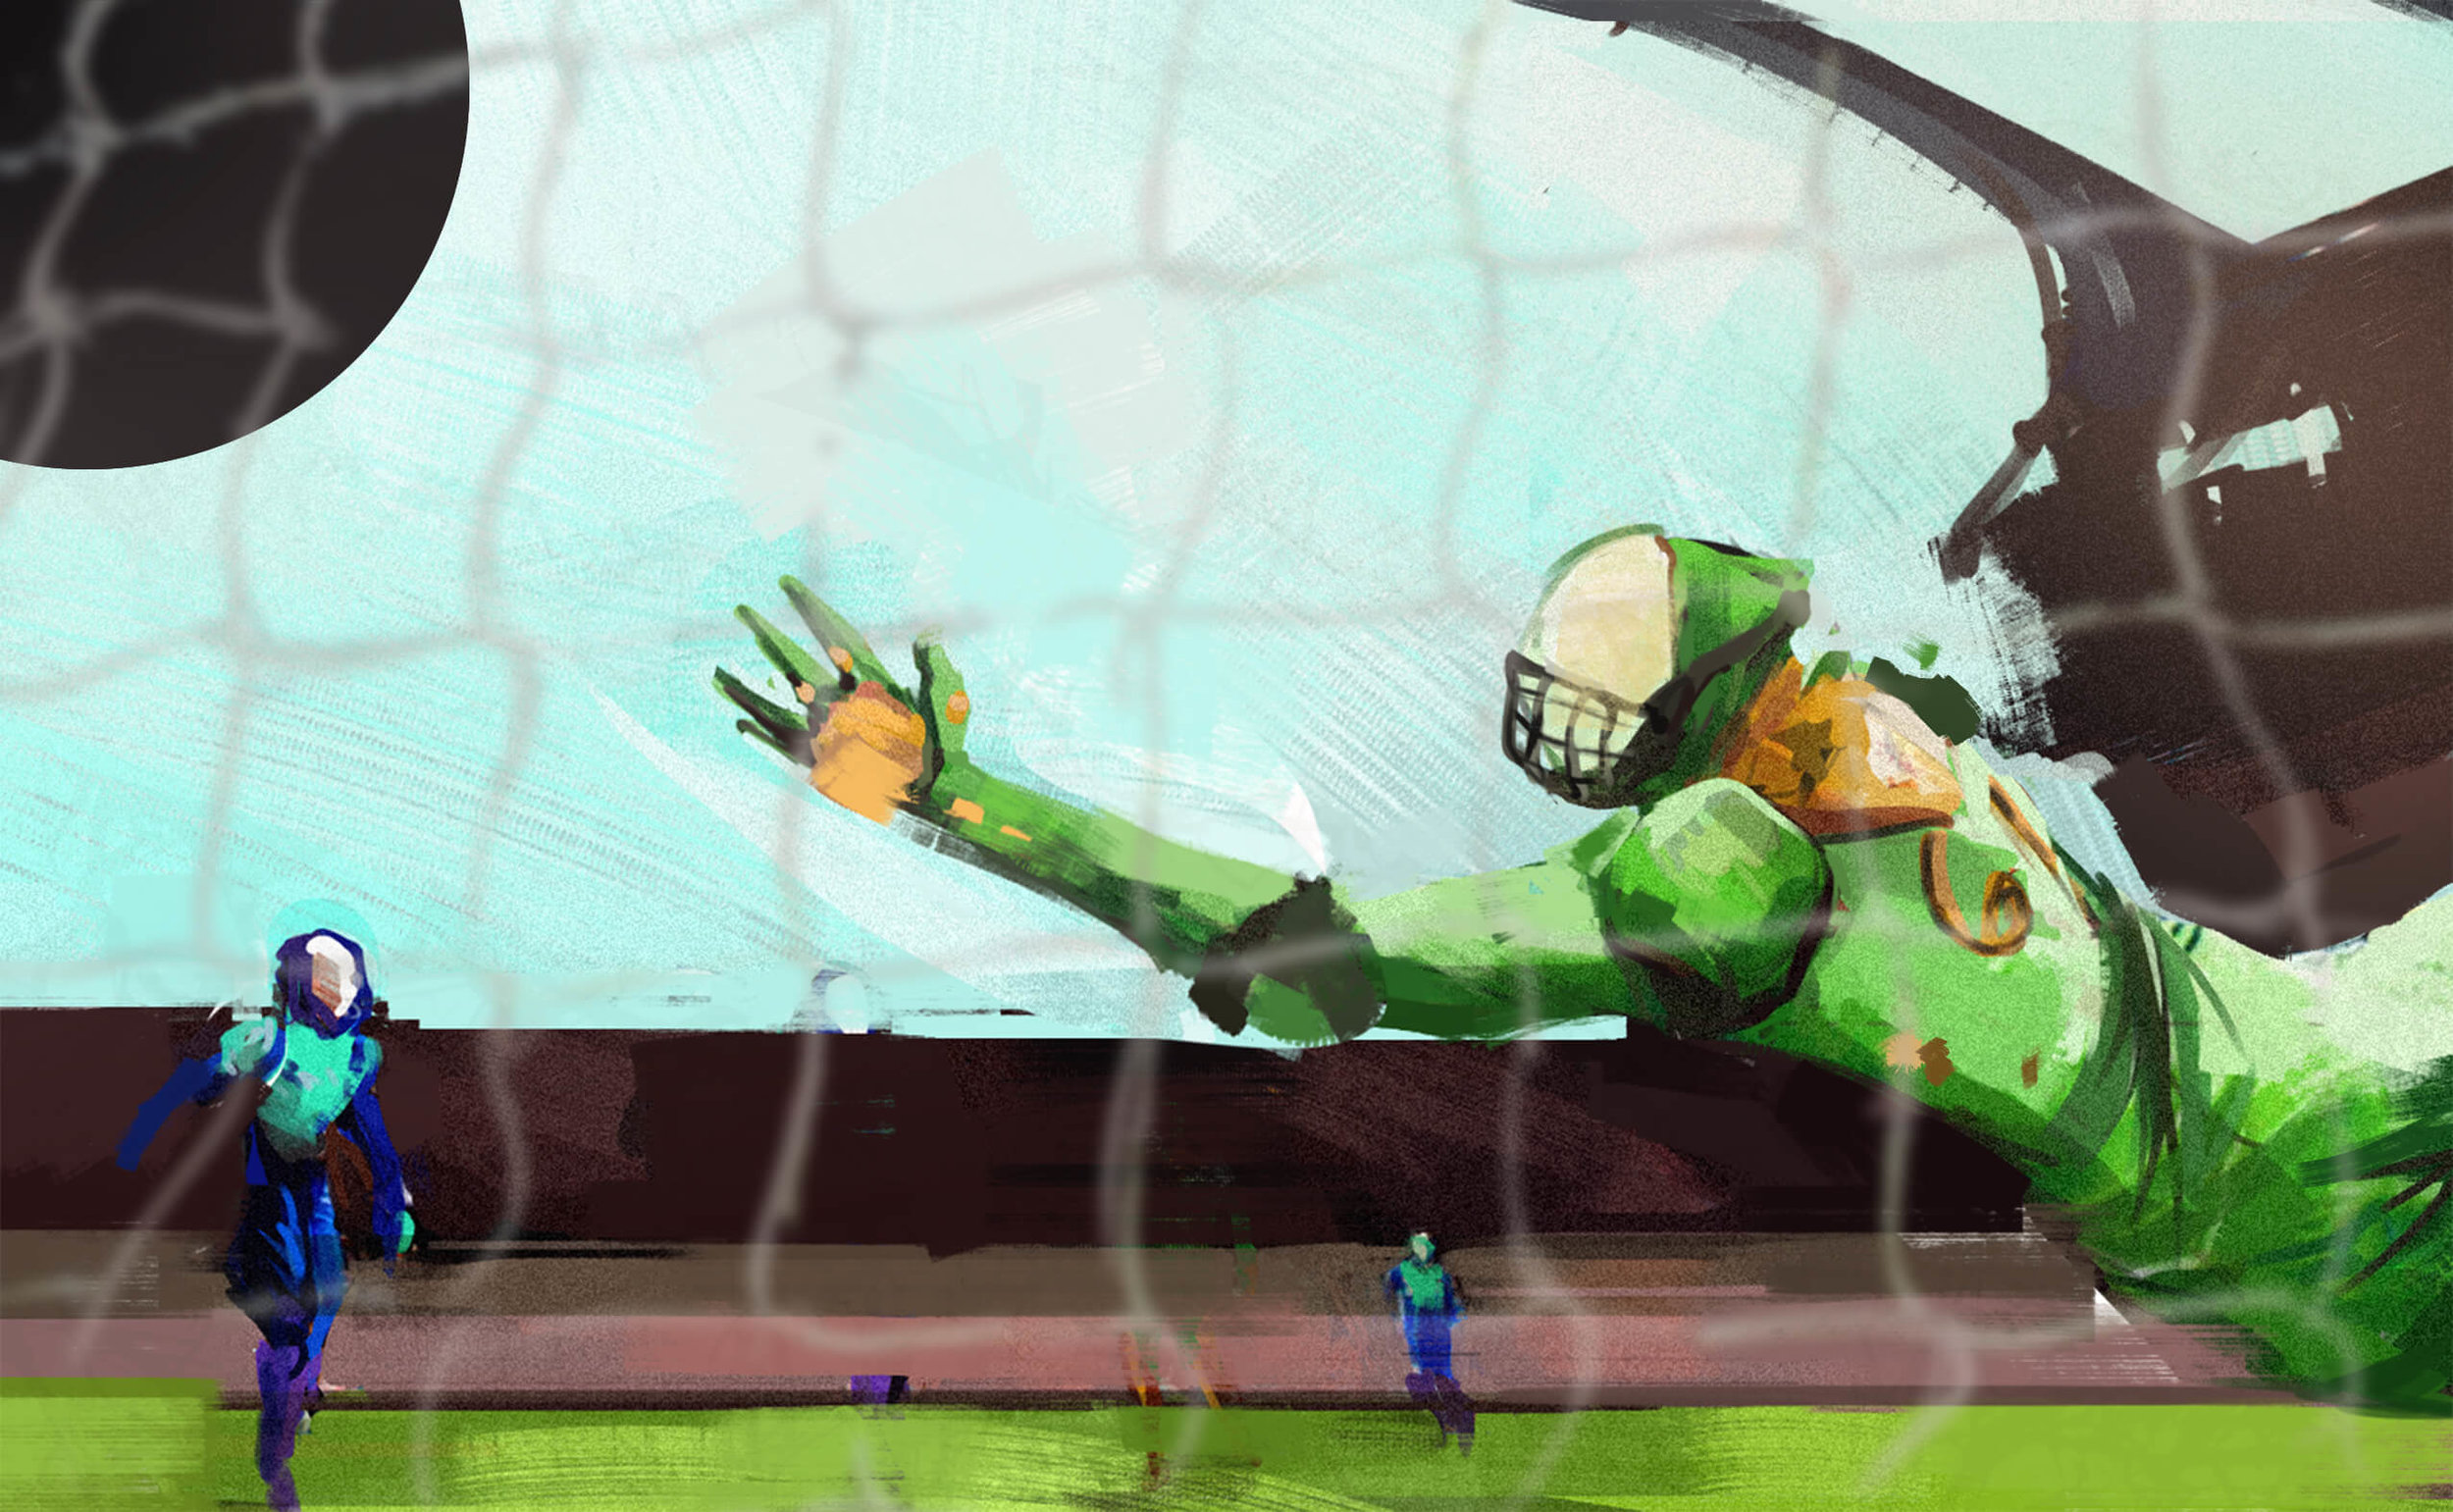 badal dives for the ball, but is unable to reach it due to an alleged equipment malfunction.